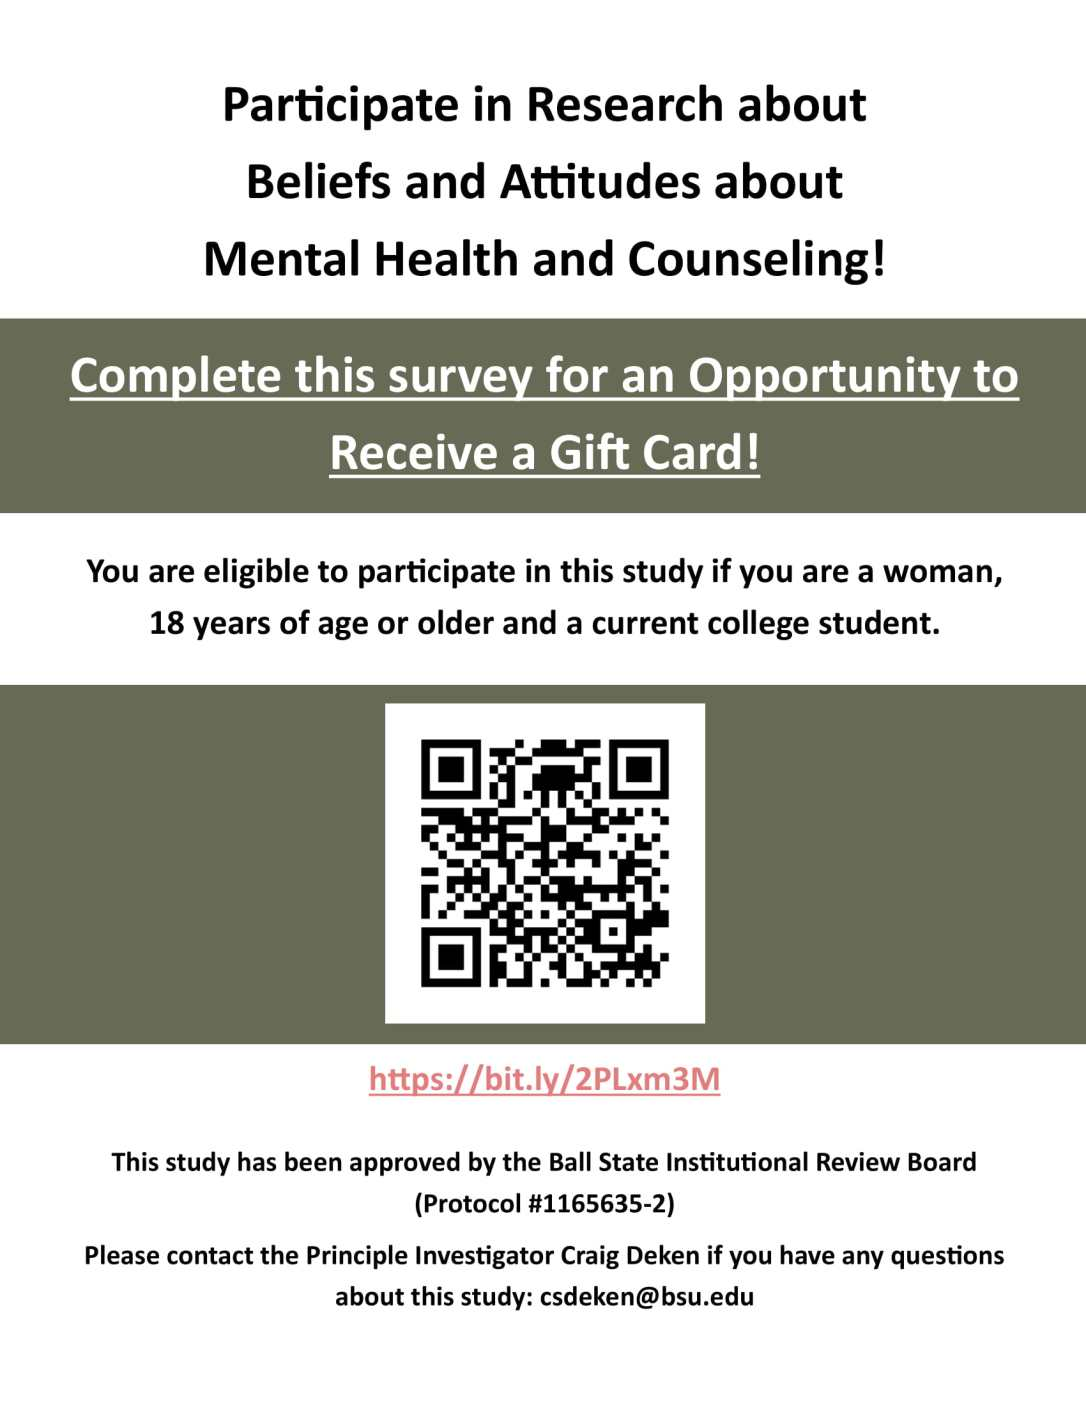 Survey Concerning Beliefs and Attitudes about Mental Health